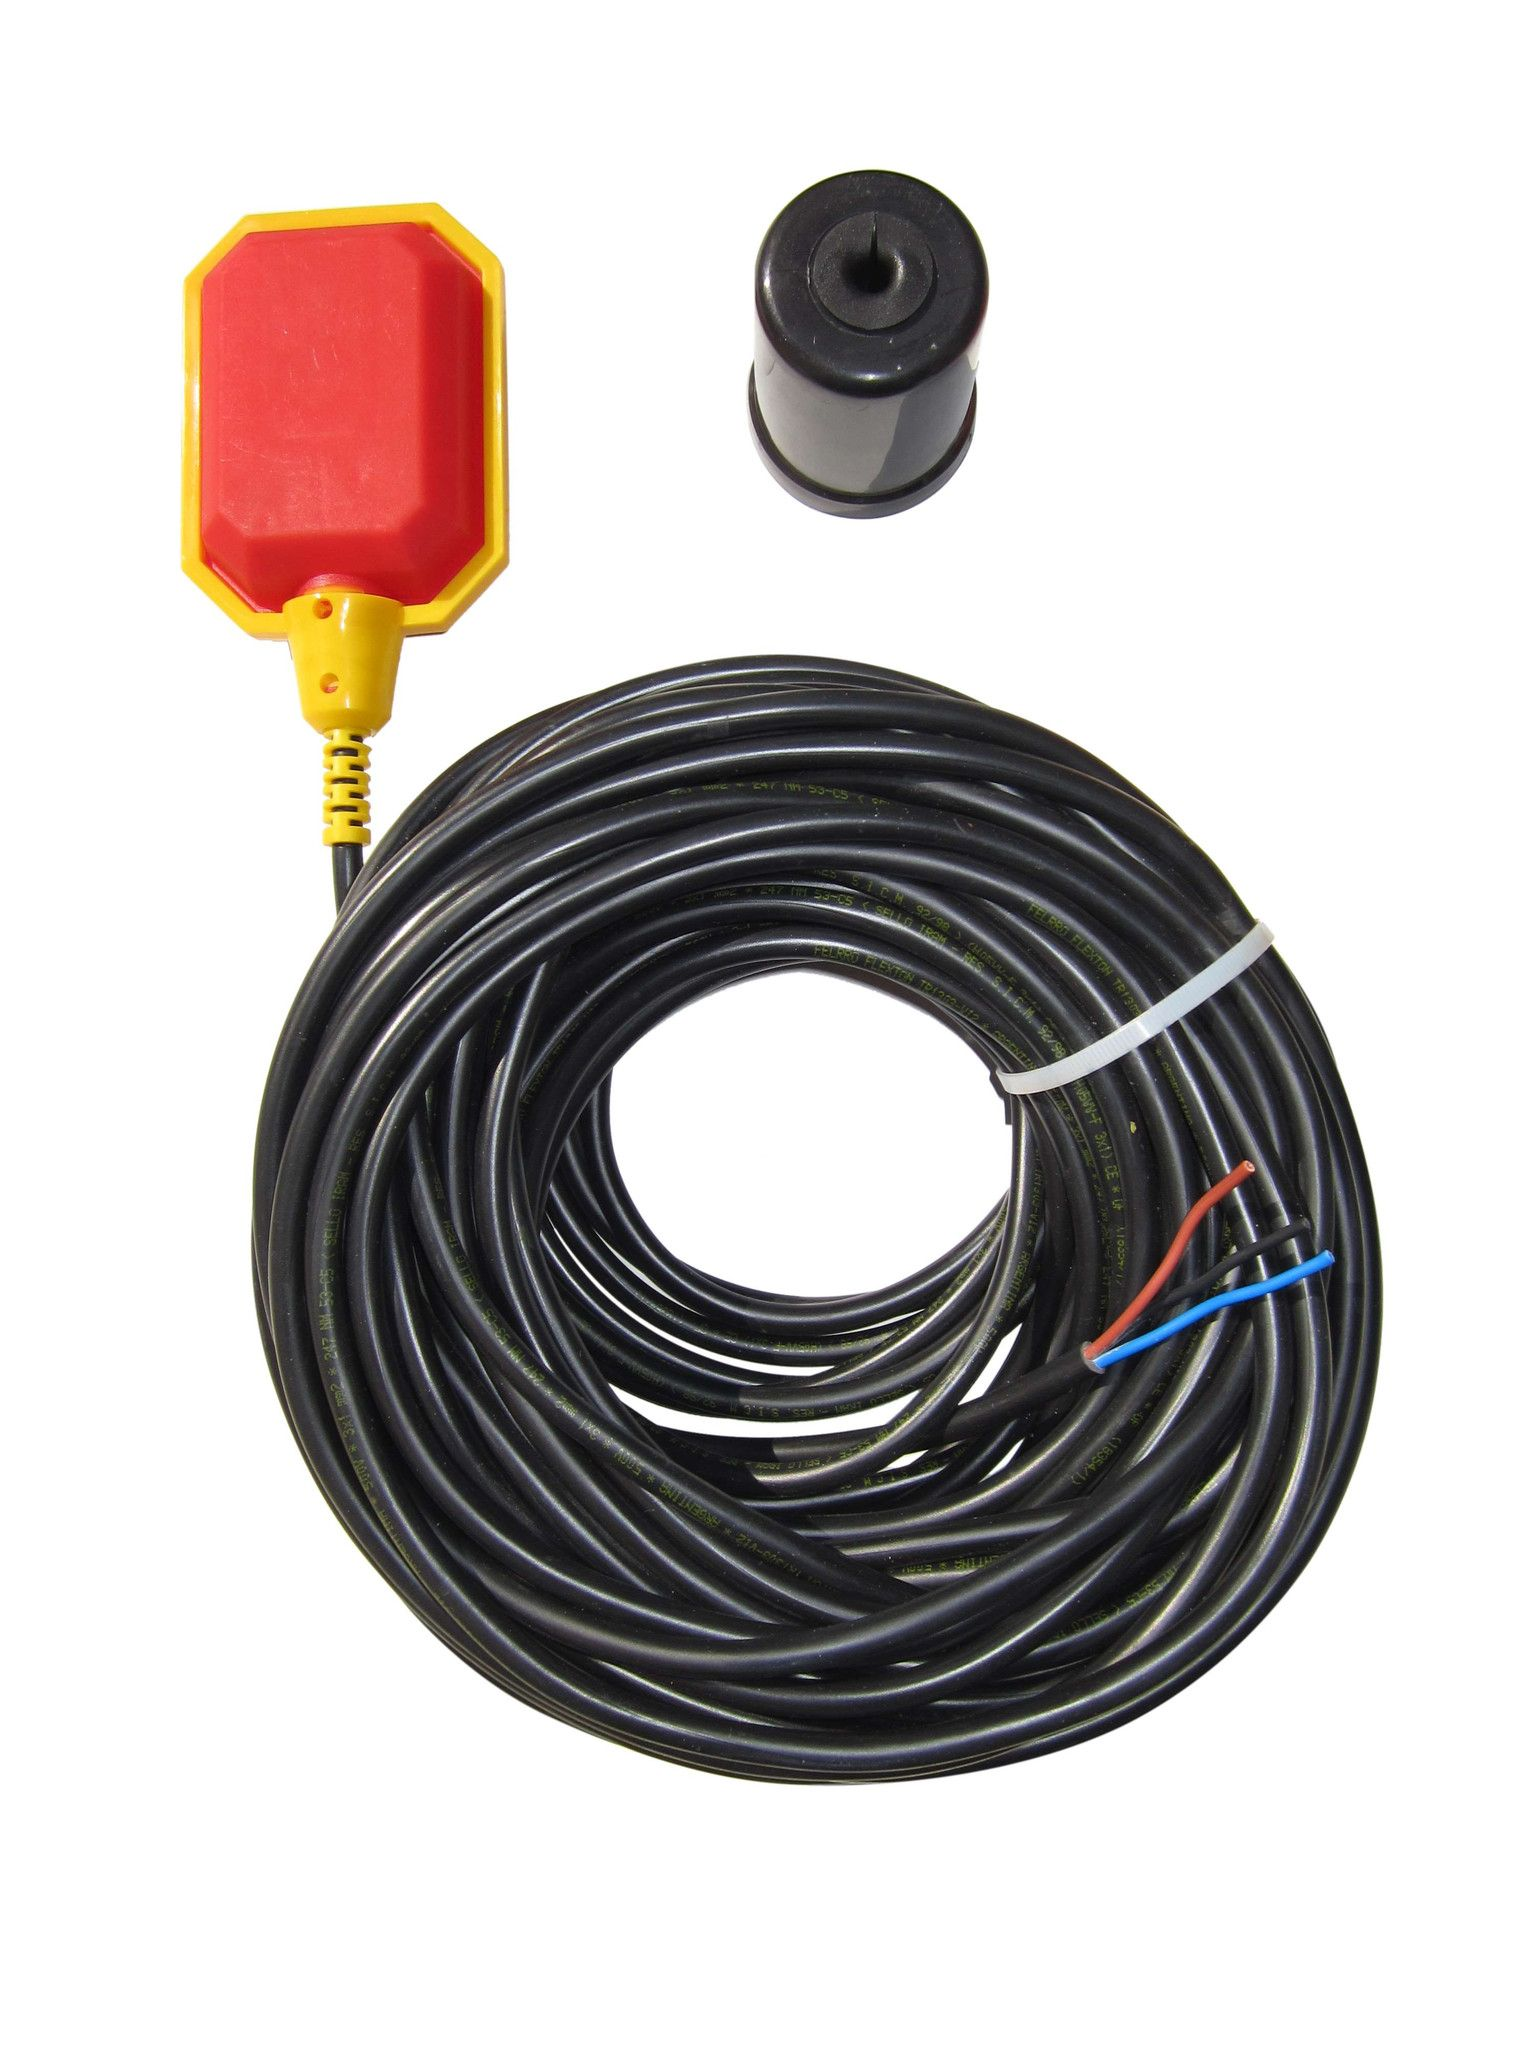 2359 Wire Lead Float Switches for Sump Pumps, Septic Tanks, Water ...